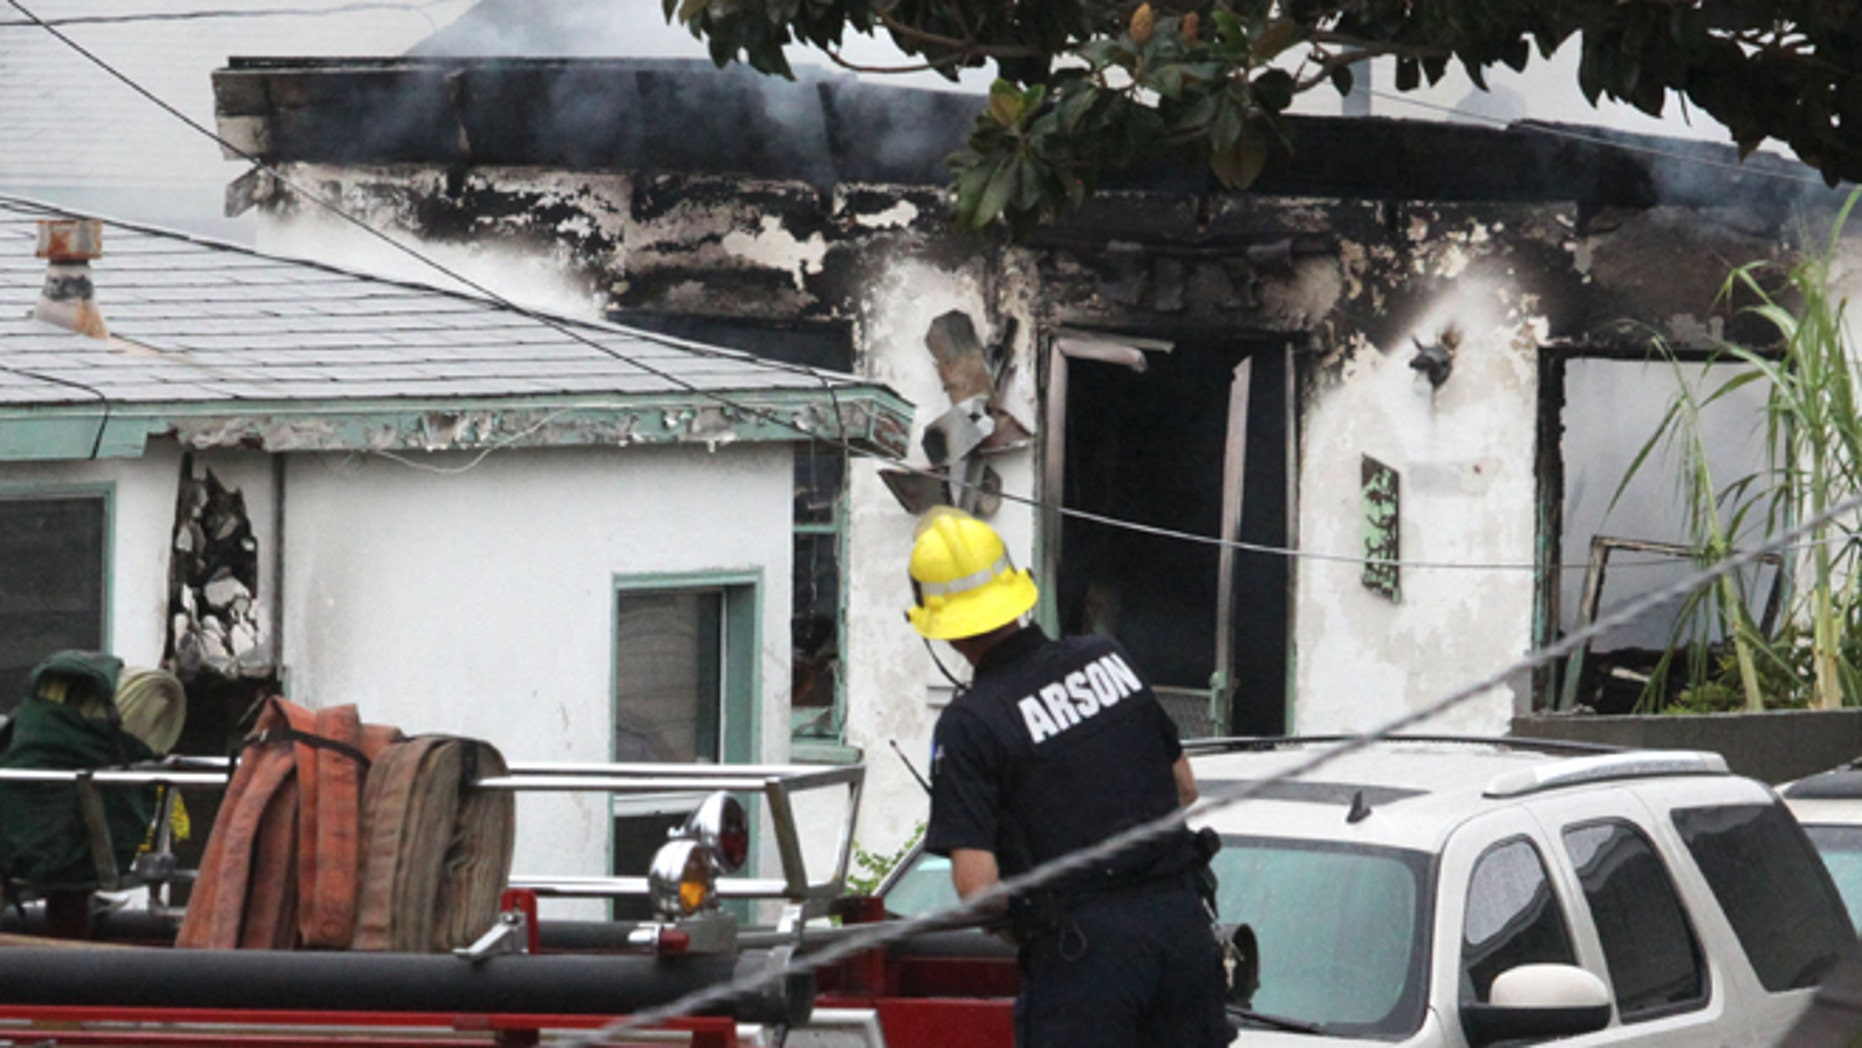 Oct. 20, 2012: Inglewood, Calif, emergency personnel respond to the scene where a man, wearing a mask, set a duplex on fire and then shot five members of a family.